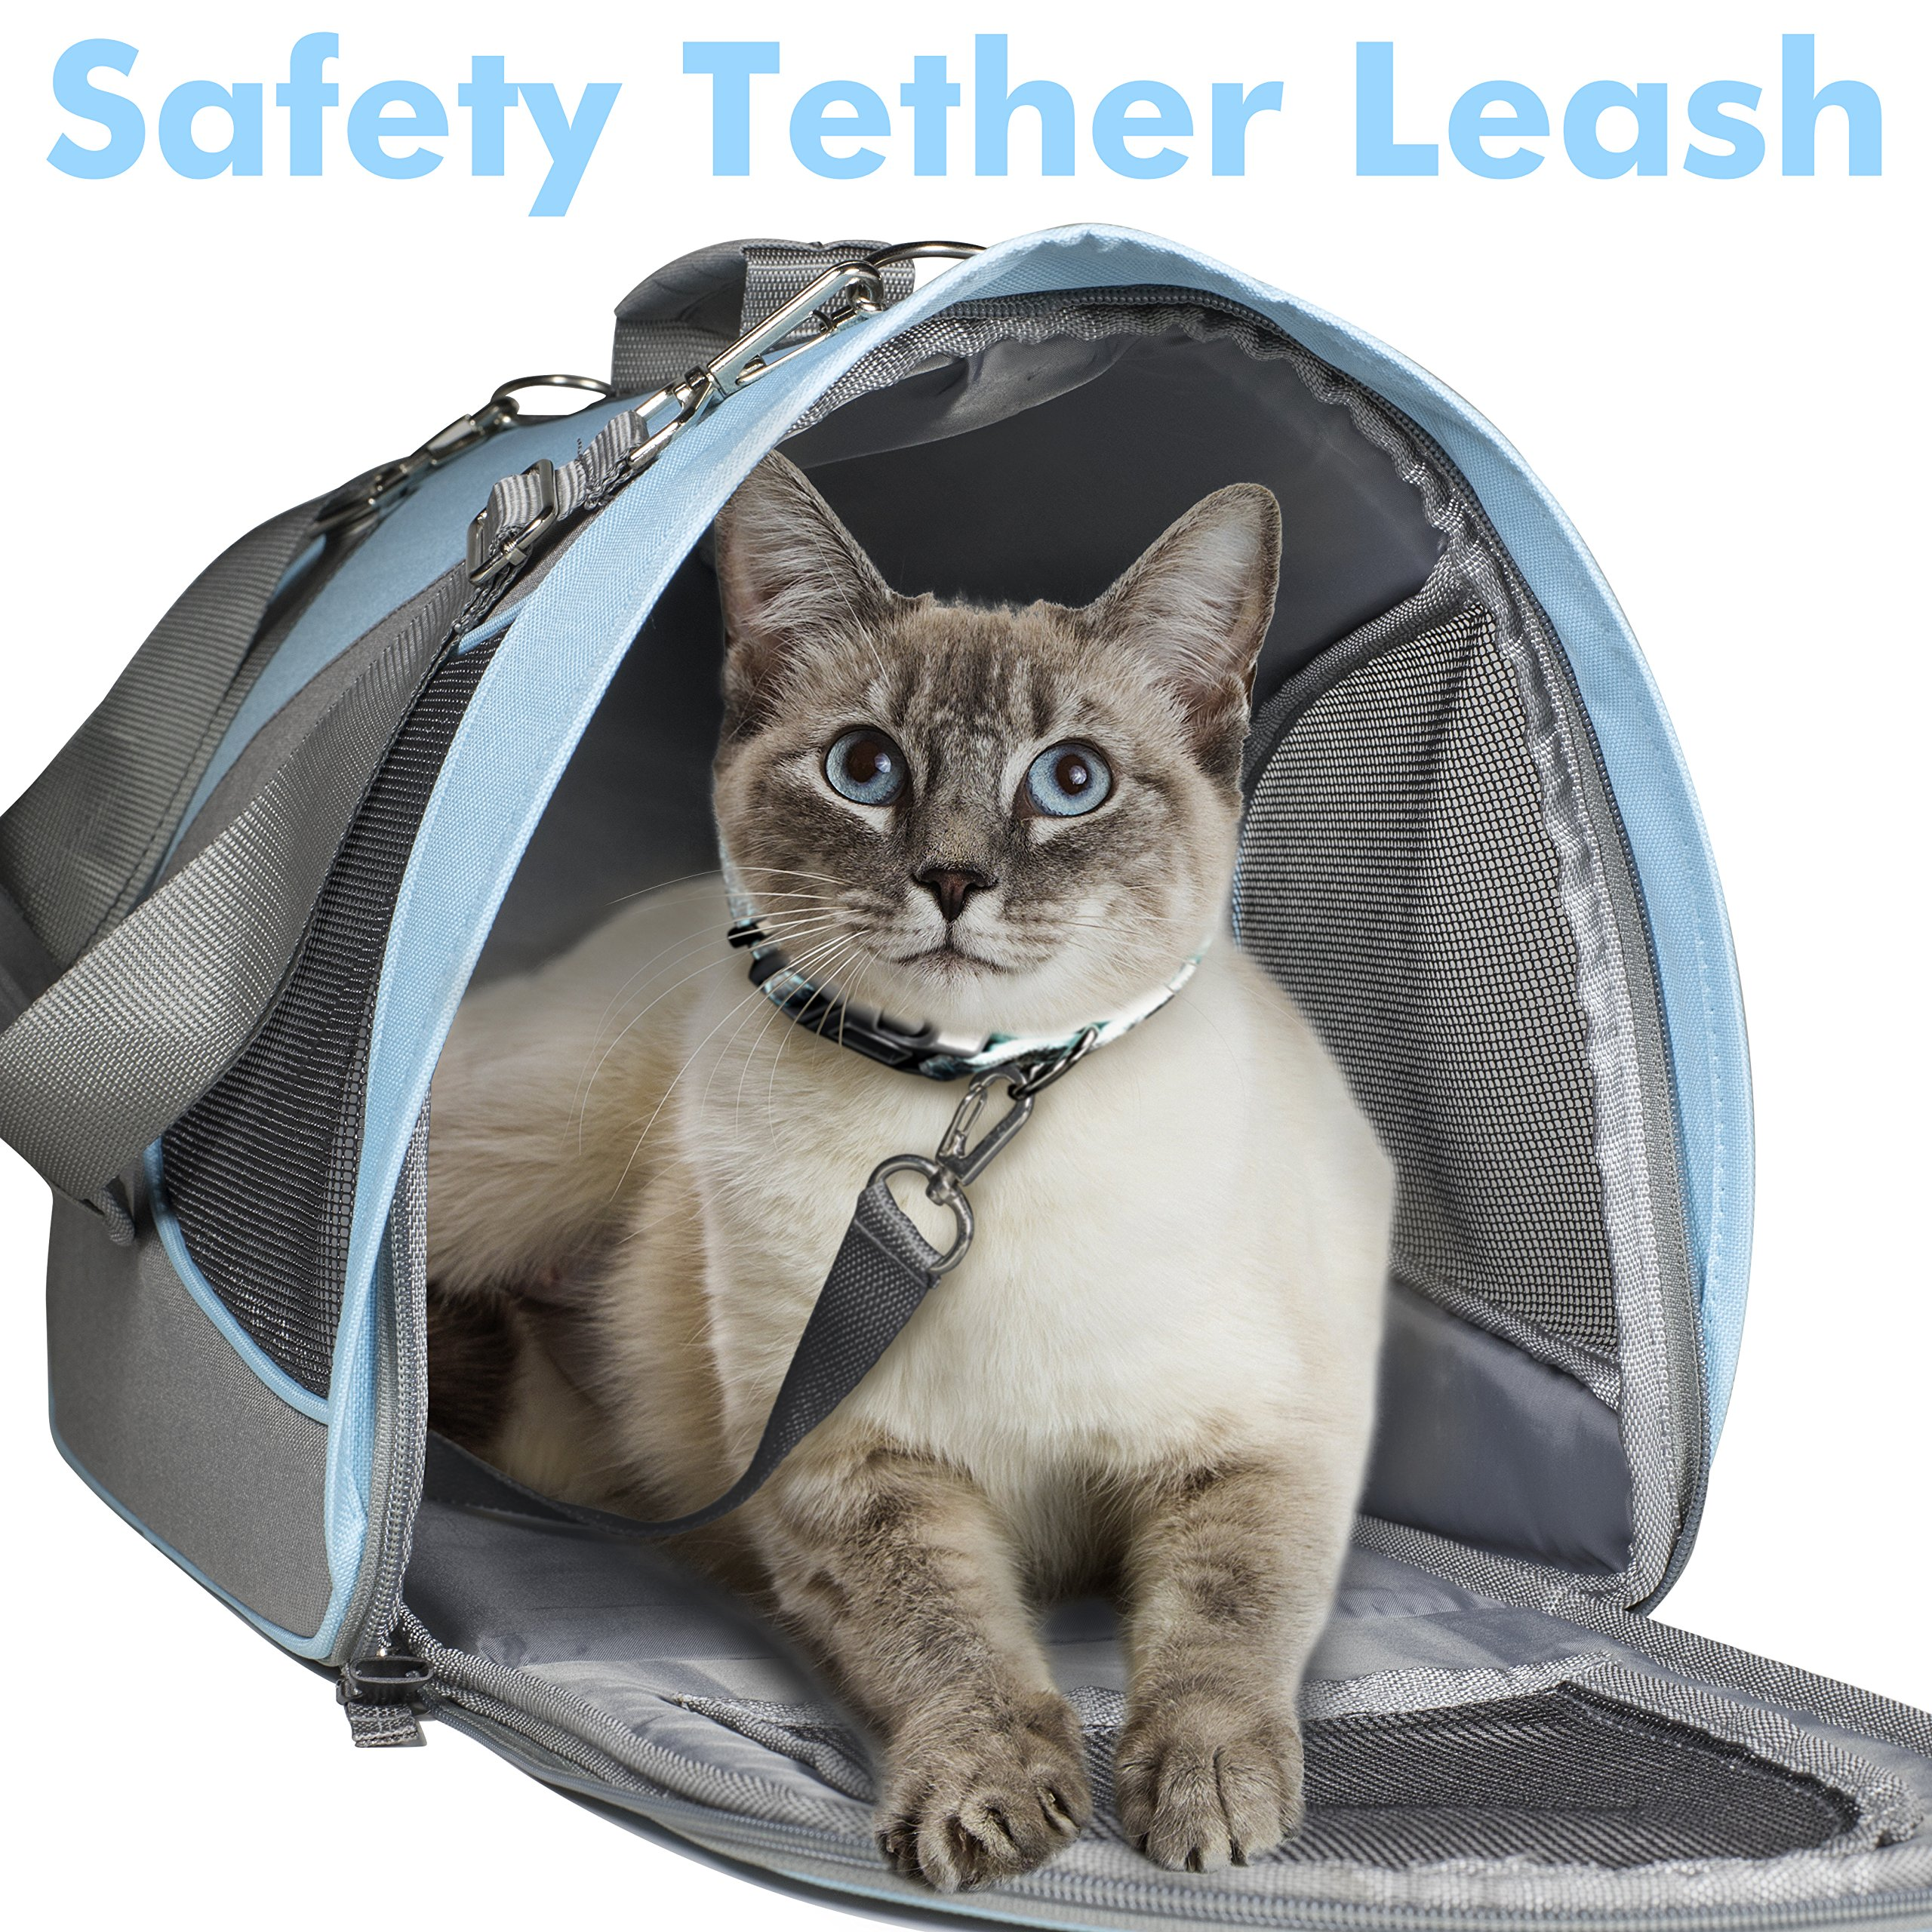 Airline Approved Pet Carrier for Cats, Small Dogs - Soft Cat Carriers Dog Travel Bag for Small Medium Large Cat by Friends Forever (Image #3)